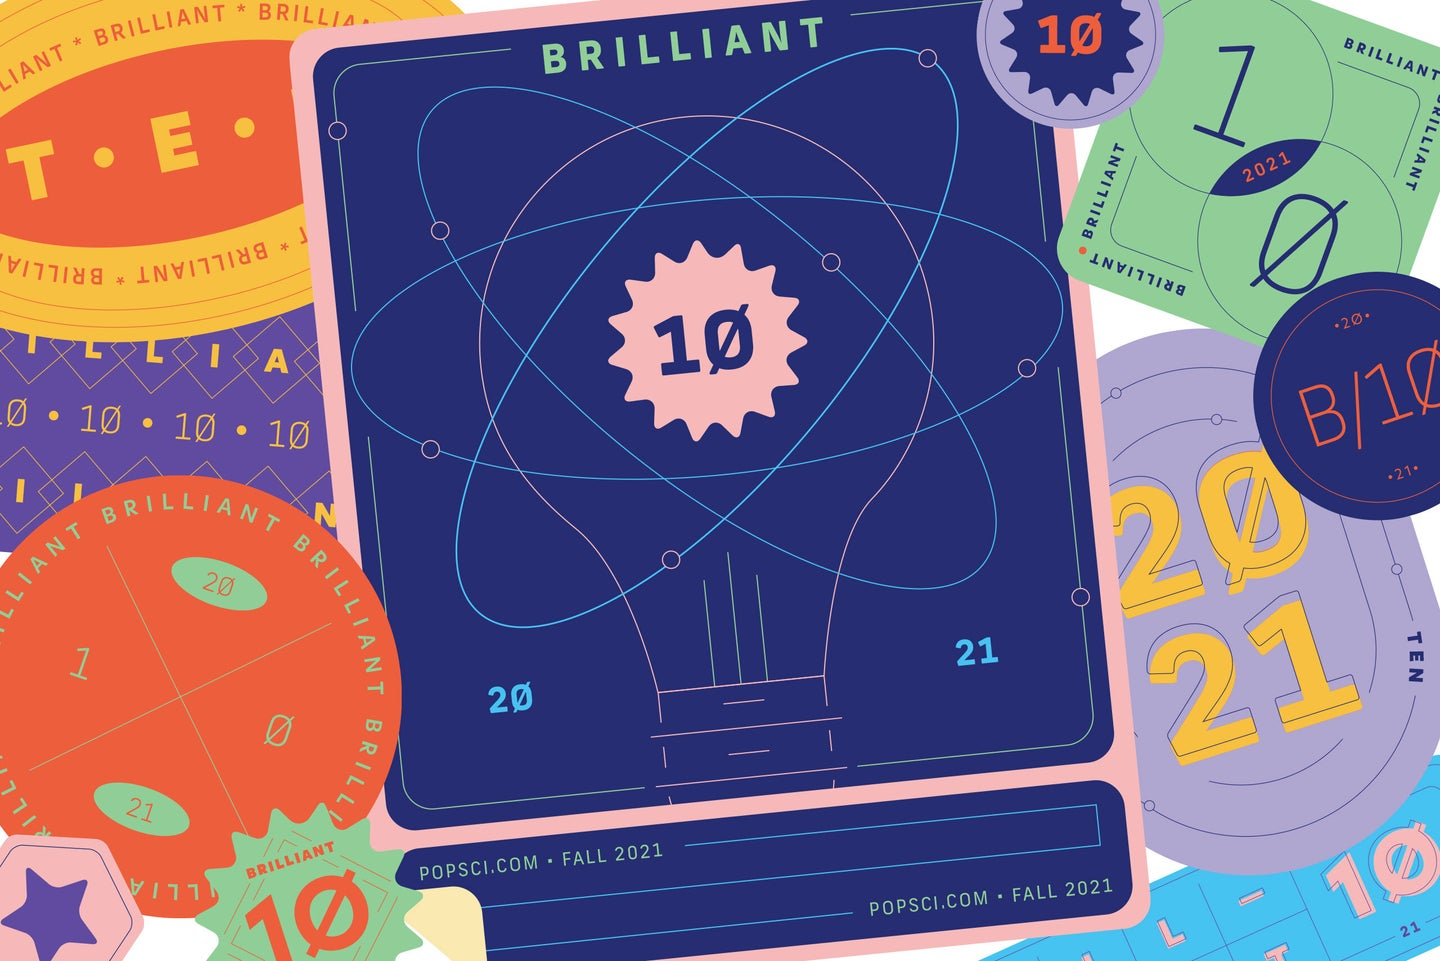 a page full of illustrated badges and awards for the Brilliant 10 scientist series